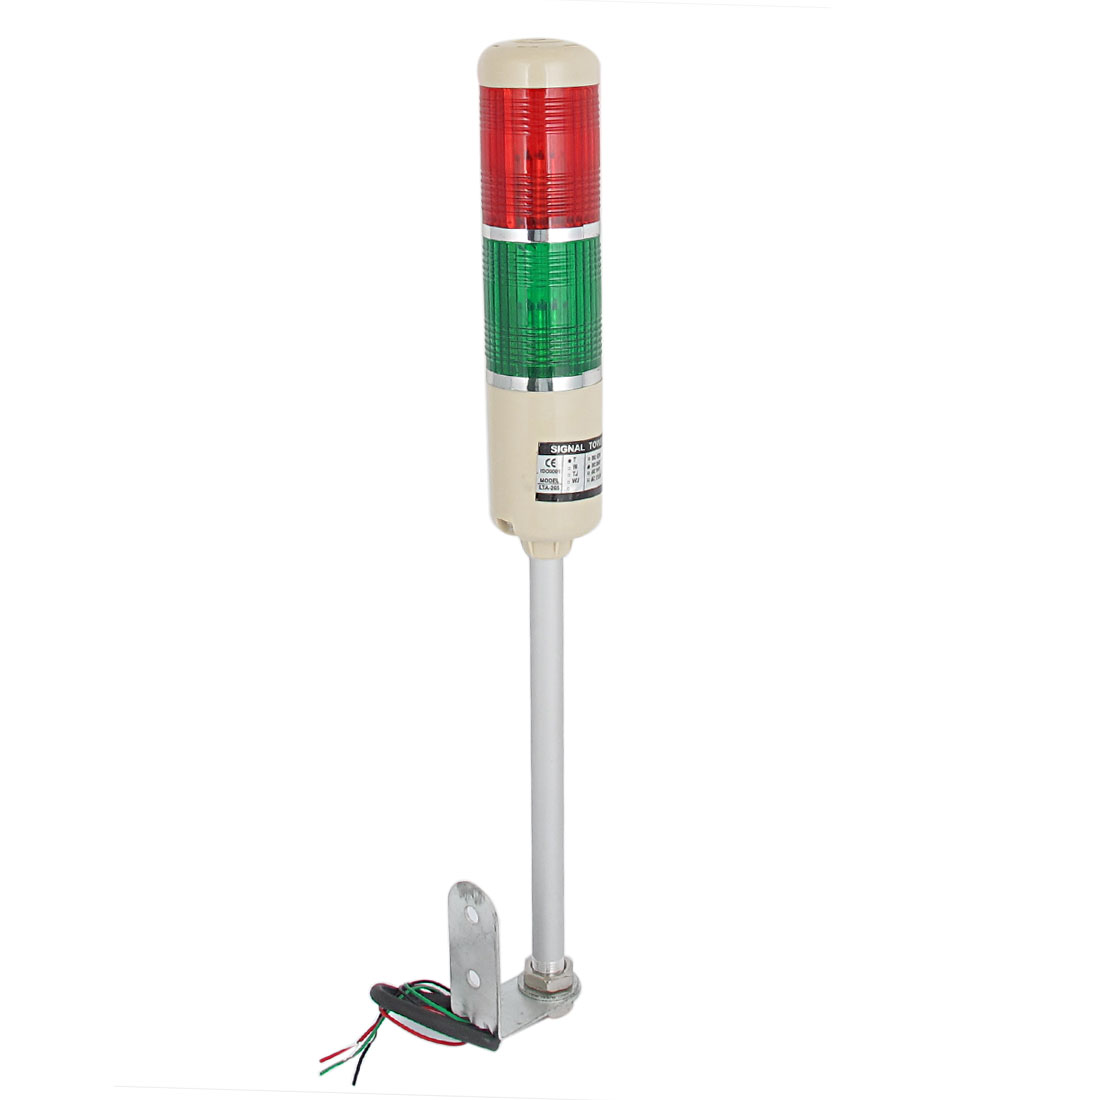 DC 24V Industrial LED Flash Warning Indicator Light Buzzer Signal Tower Alarm Lamp Red Green